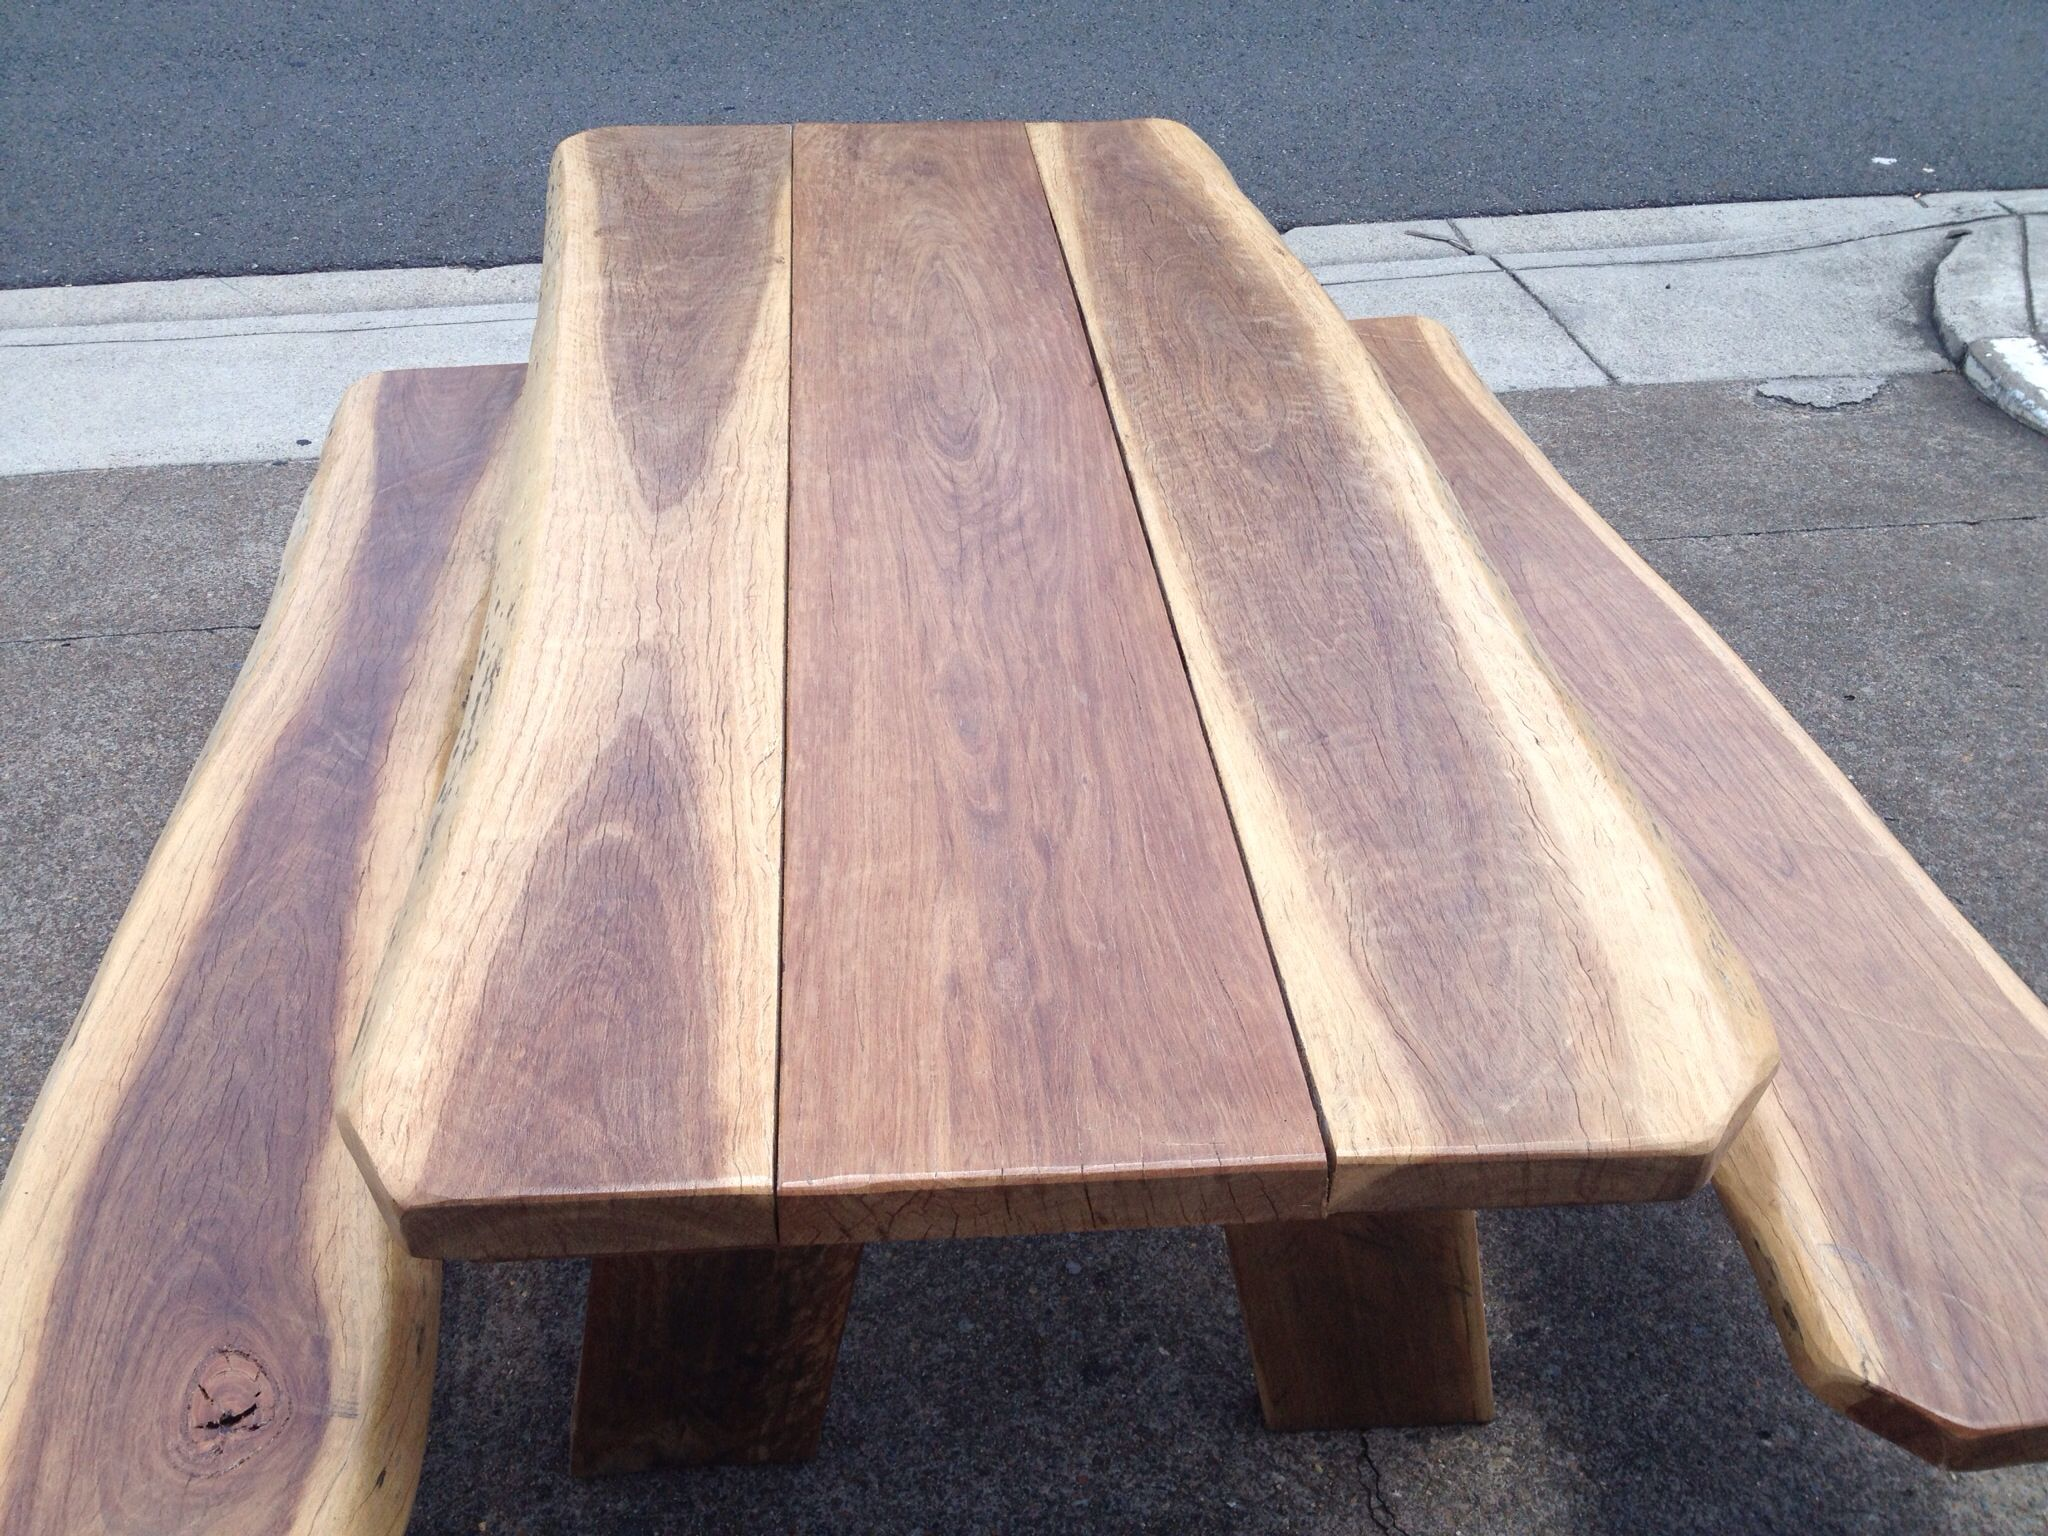 Rustic Hardwood Slab Picnic Table made from durable Spotted